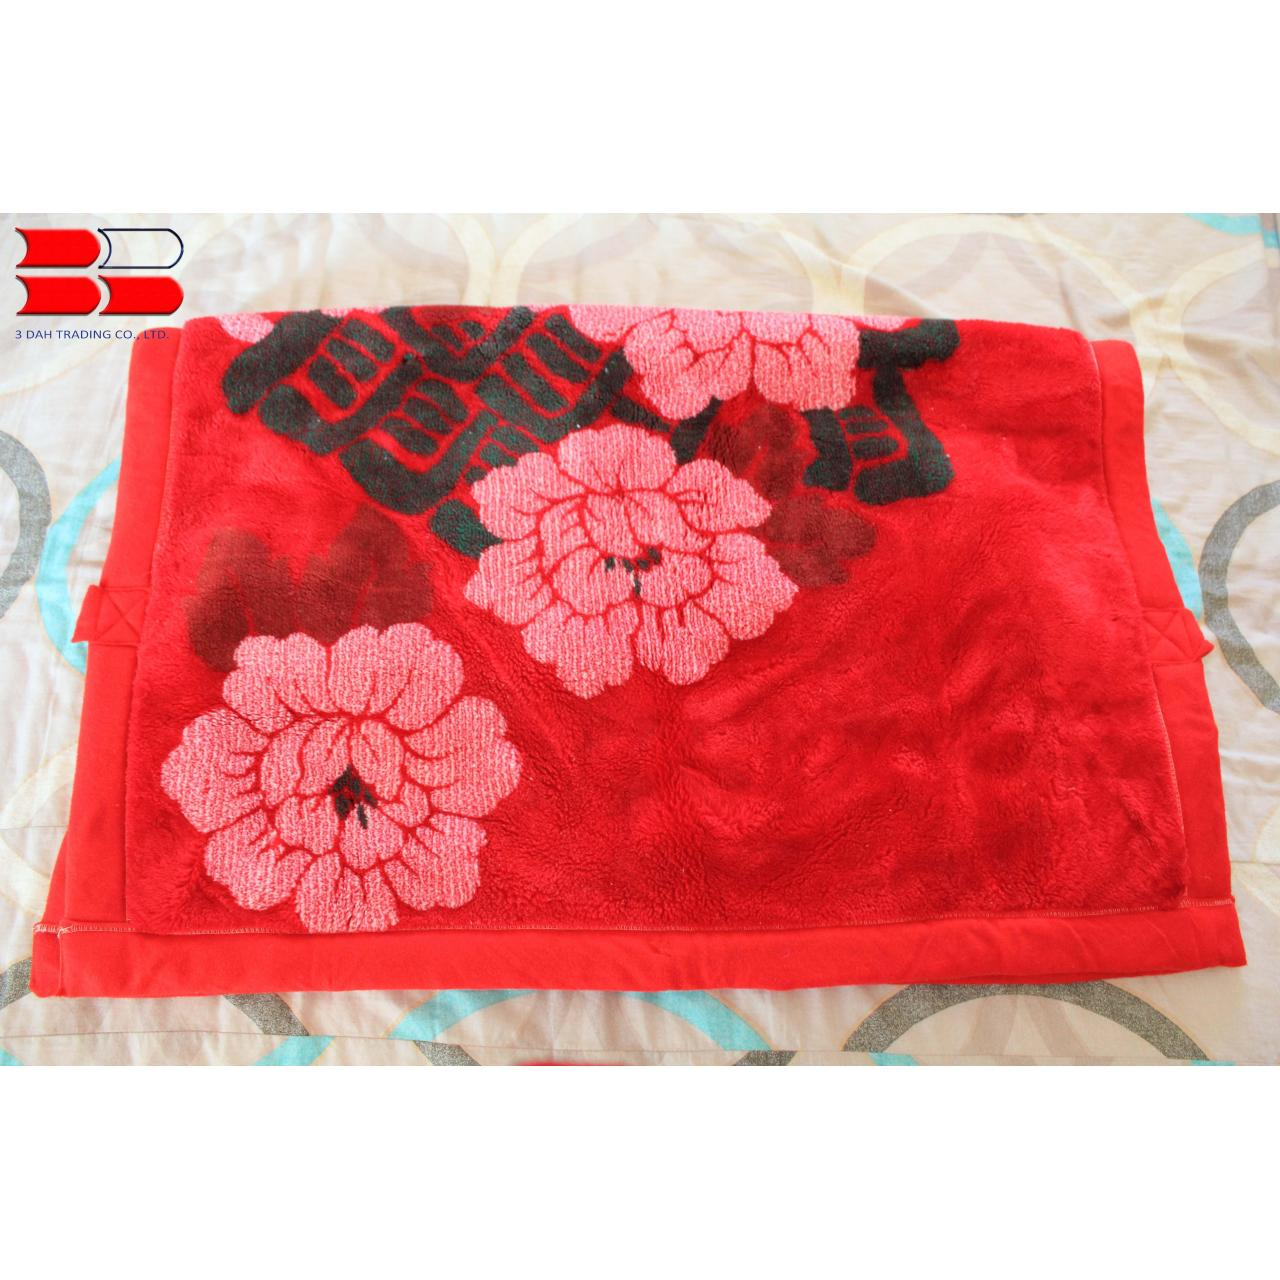 Cheap Used Blanket - Thick for sale